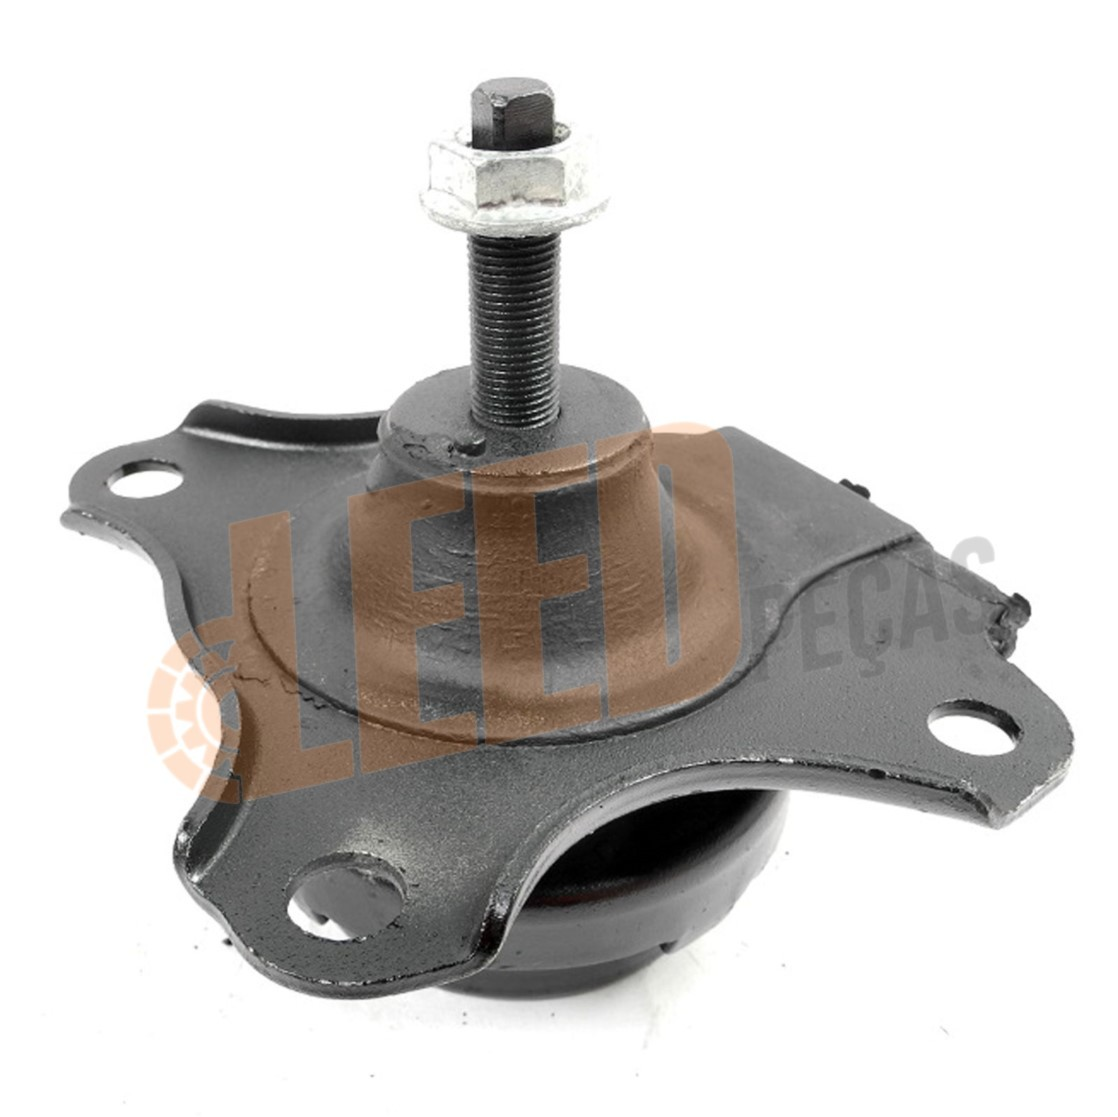 Coxim Motor Esquerdo Honda Civic 2001 2002 2003 2004 2005 2006 Manual